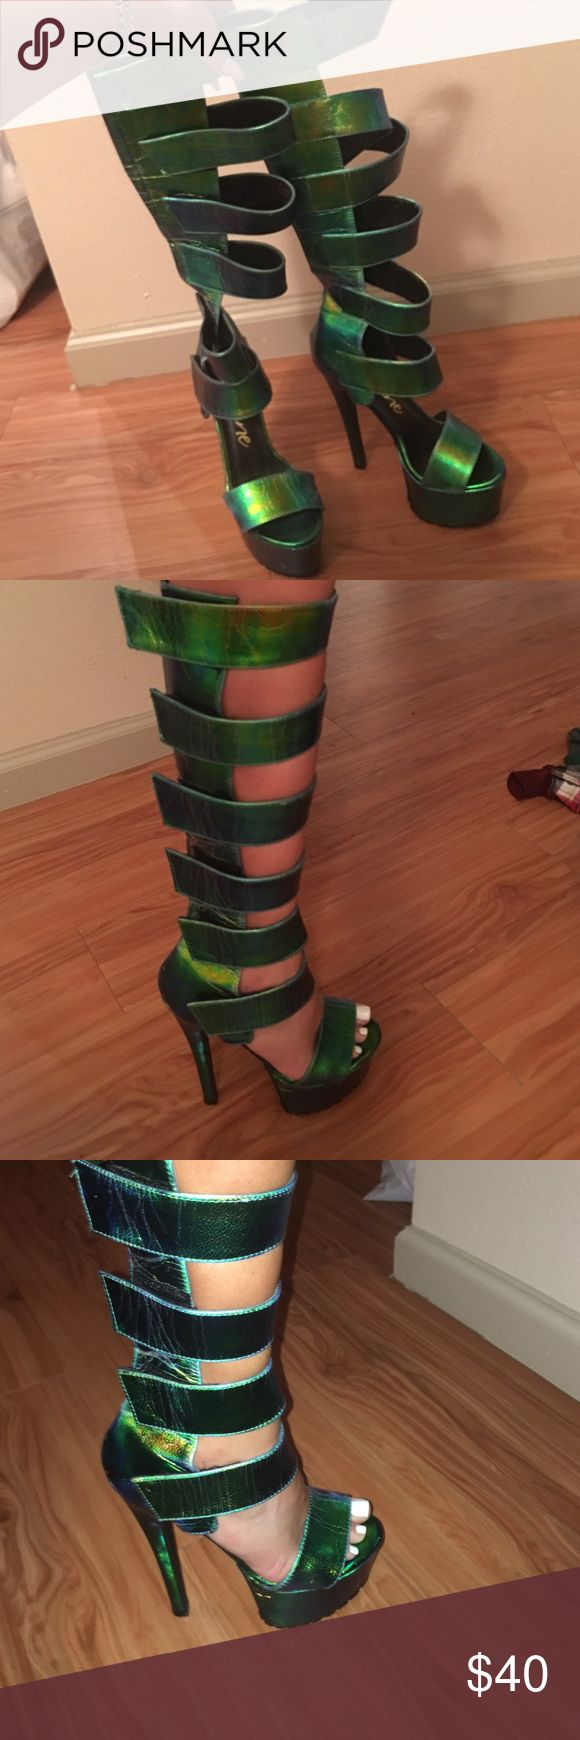 Gladiator hight heels Green metallic to the nee strapy shoes in perfect condition Nasty Gal Shoes Lace Up Boots